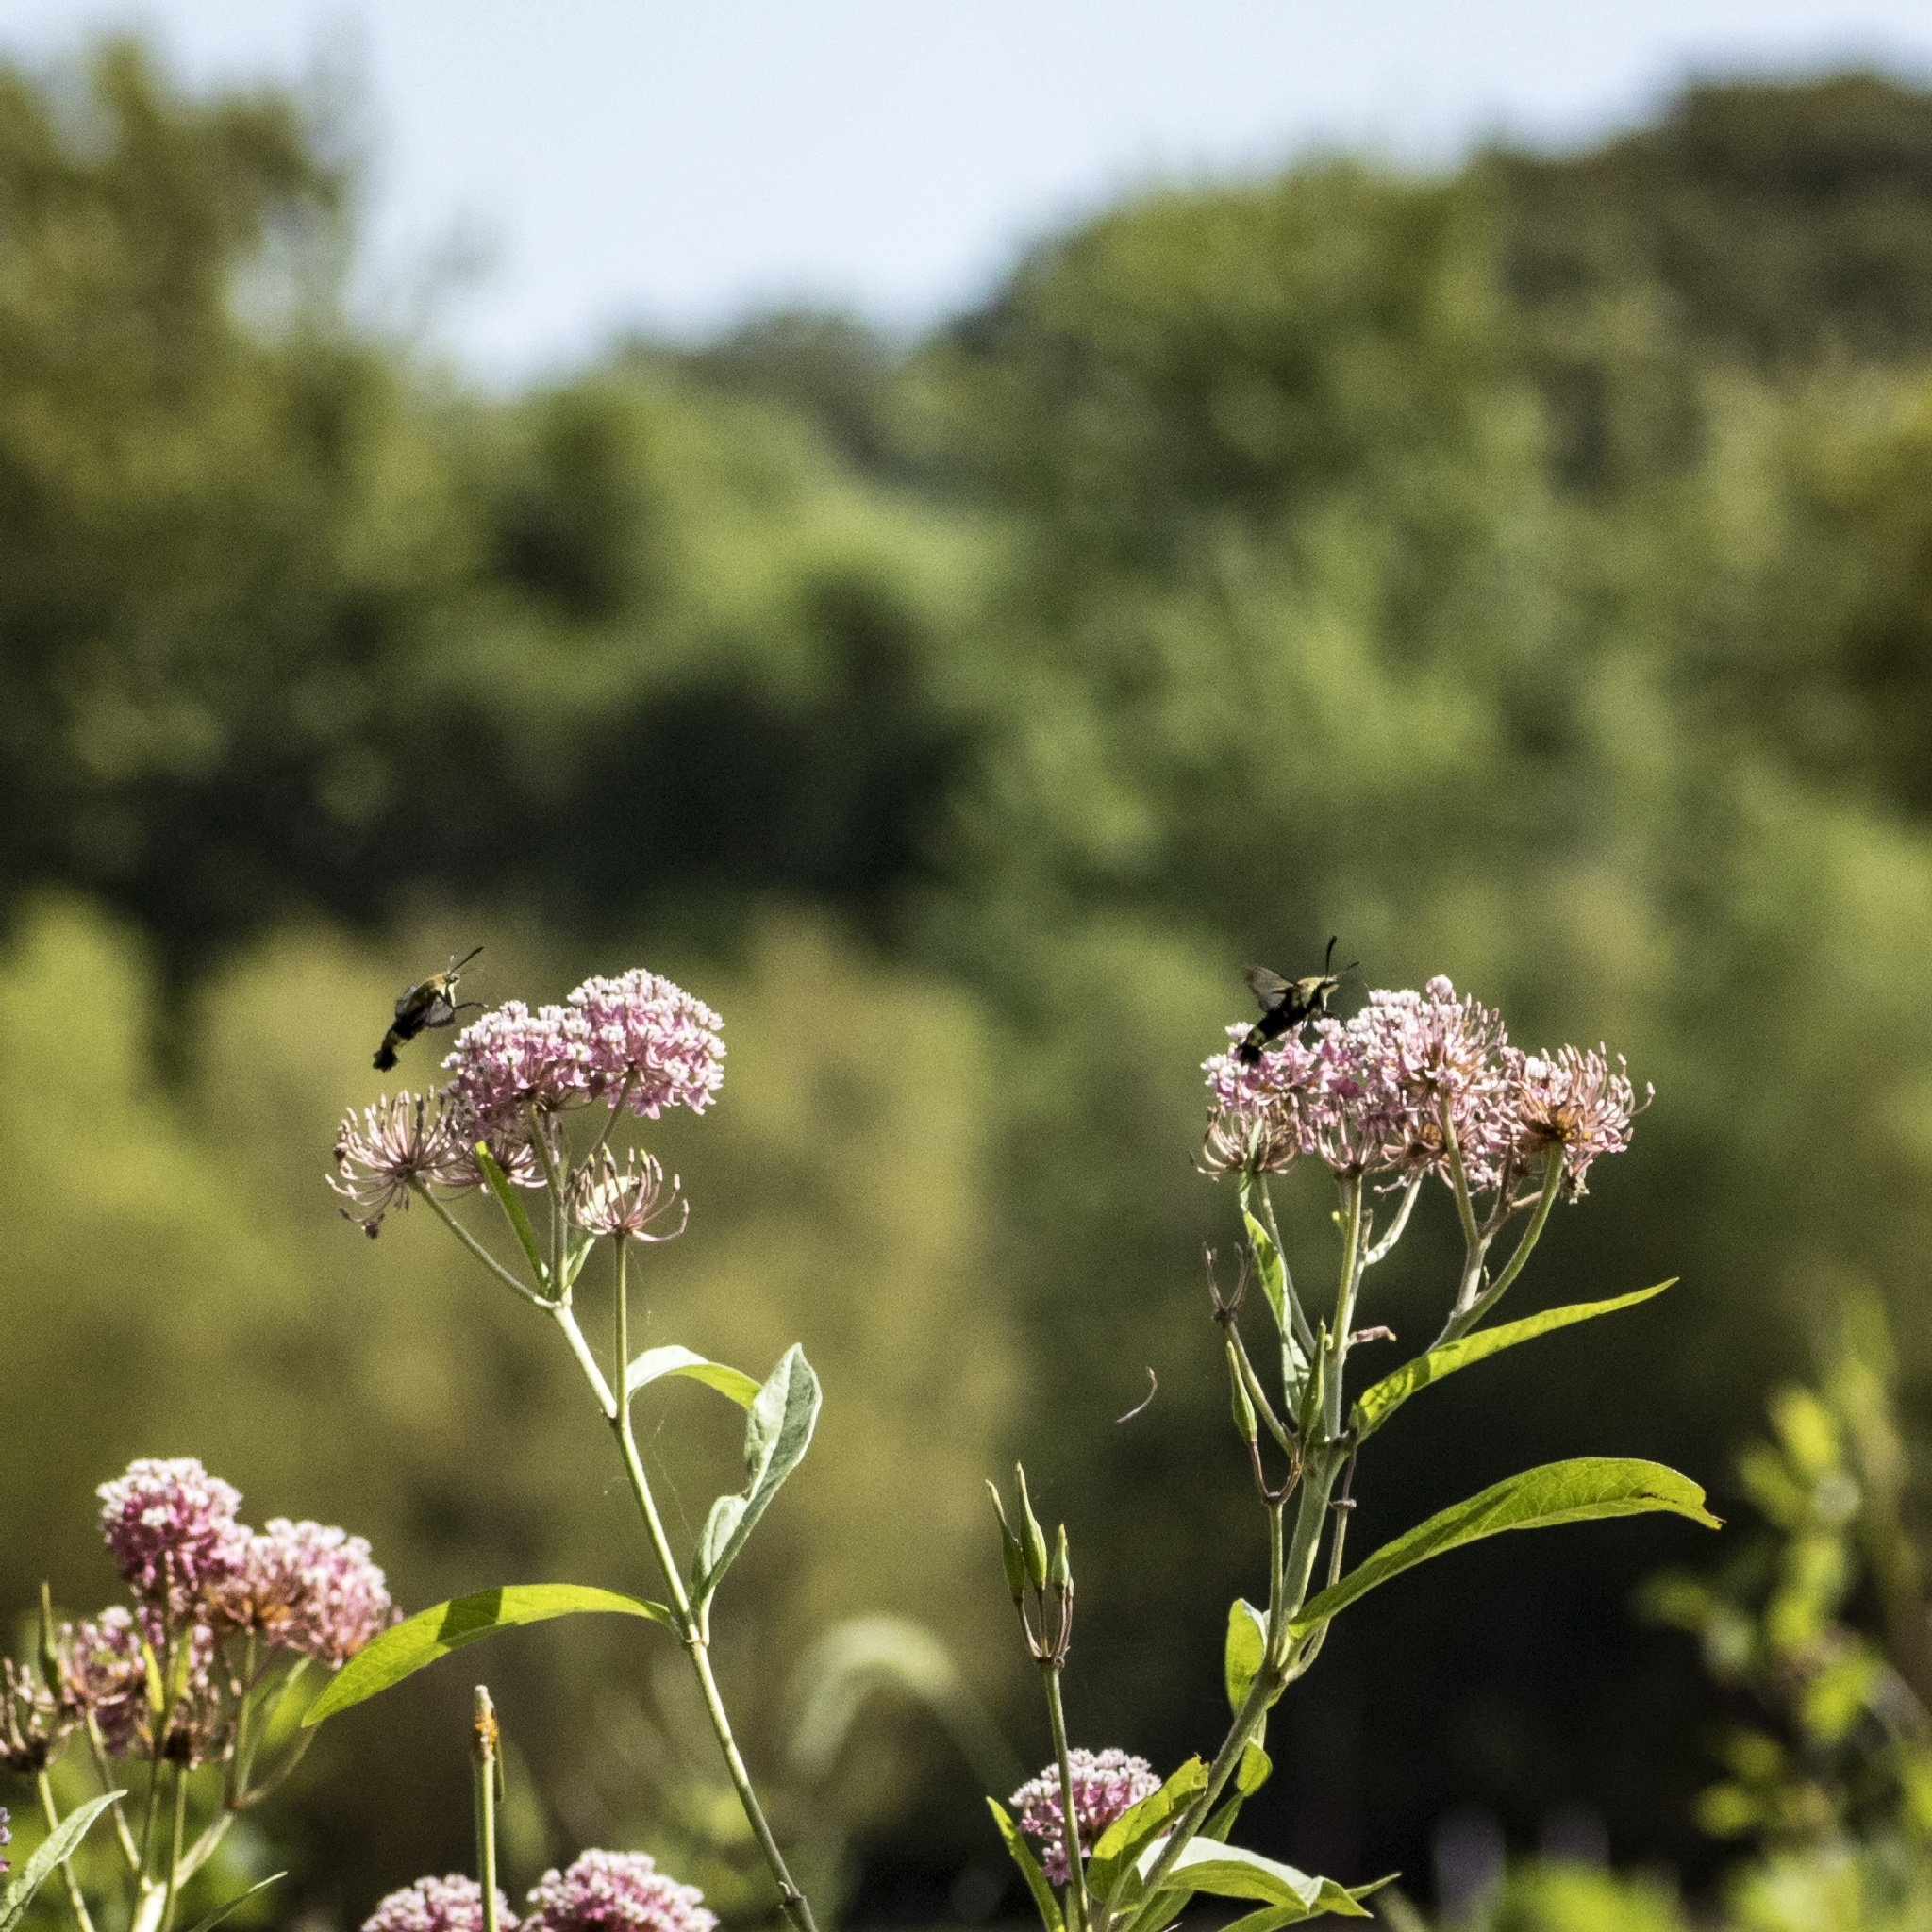 Hummingbird moths on swamp milkweed by Martha Glotzhober